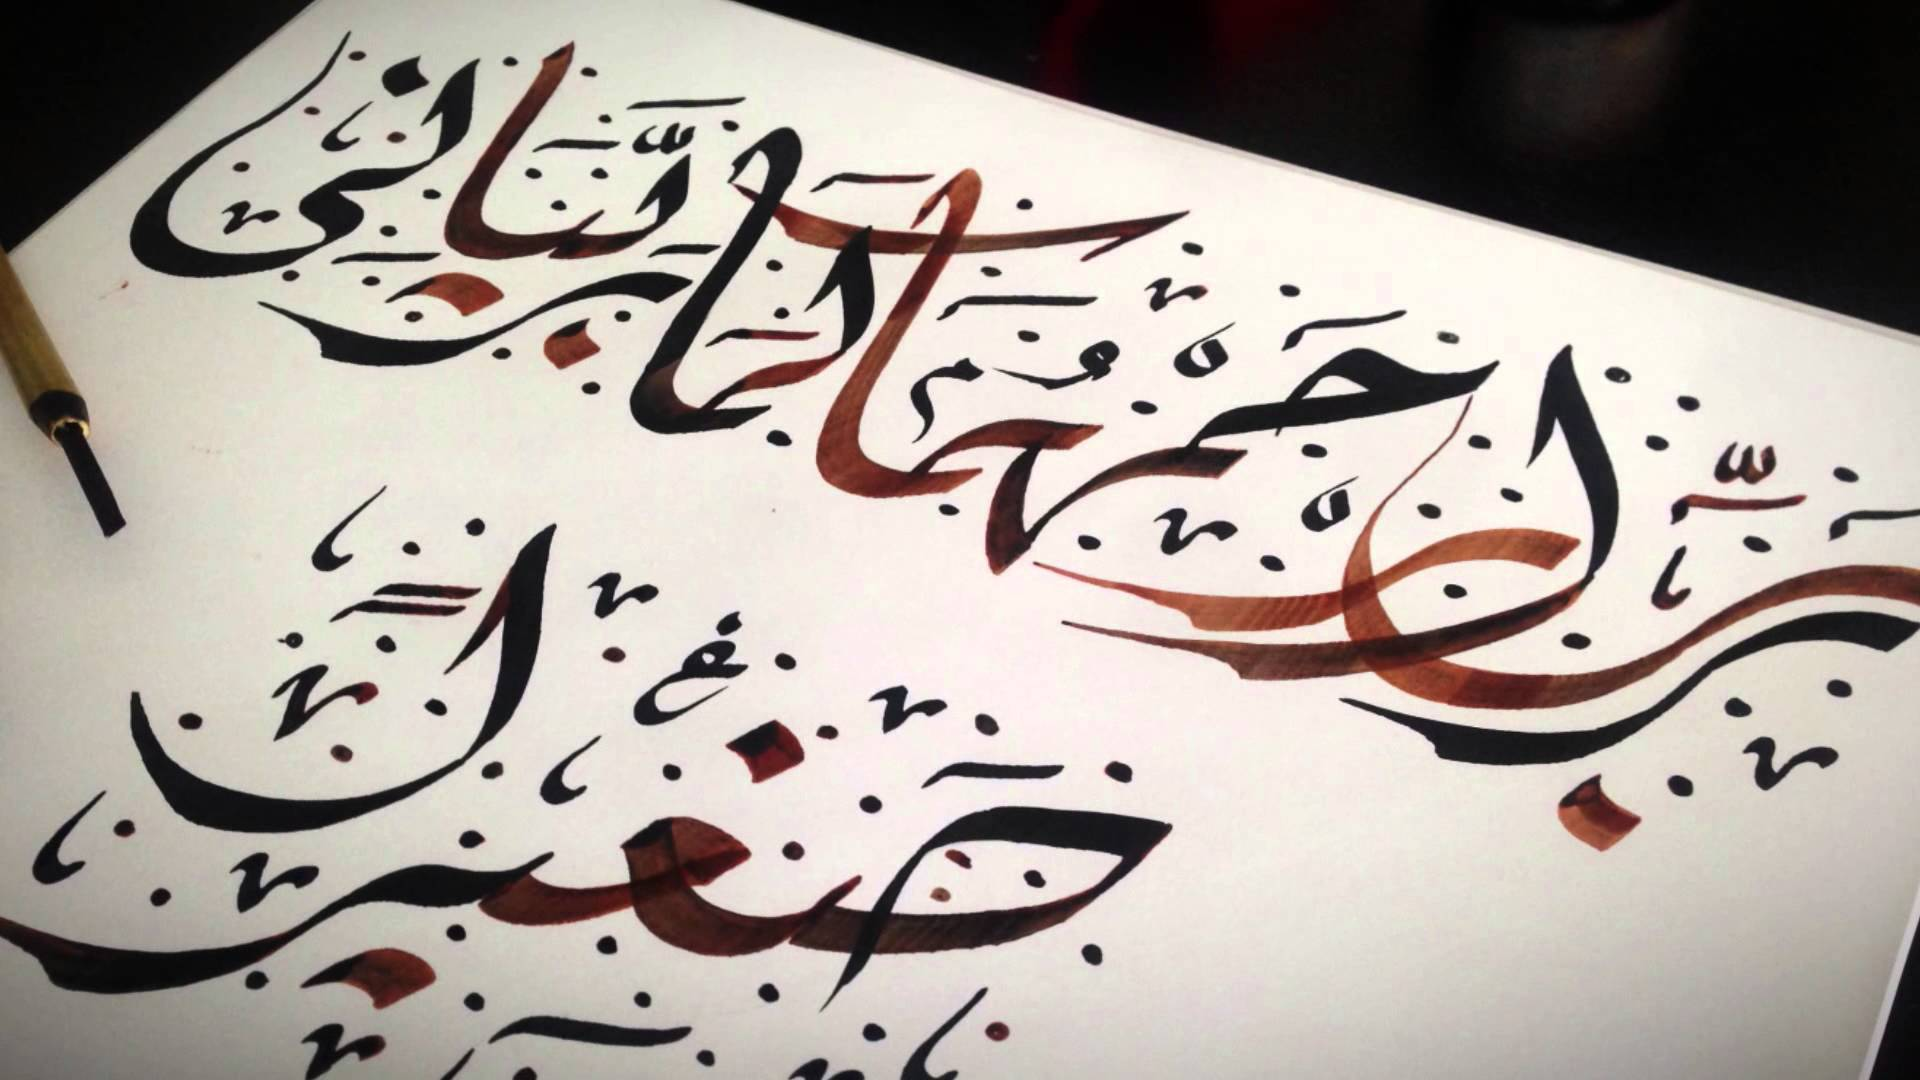 Best Arabic calligraphy book for beginners in 2021